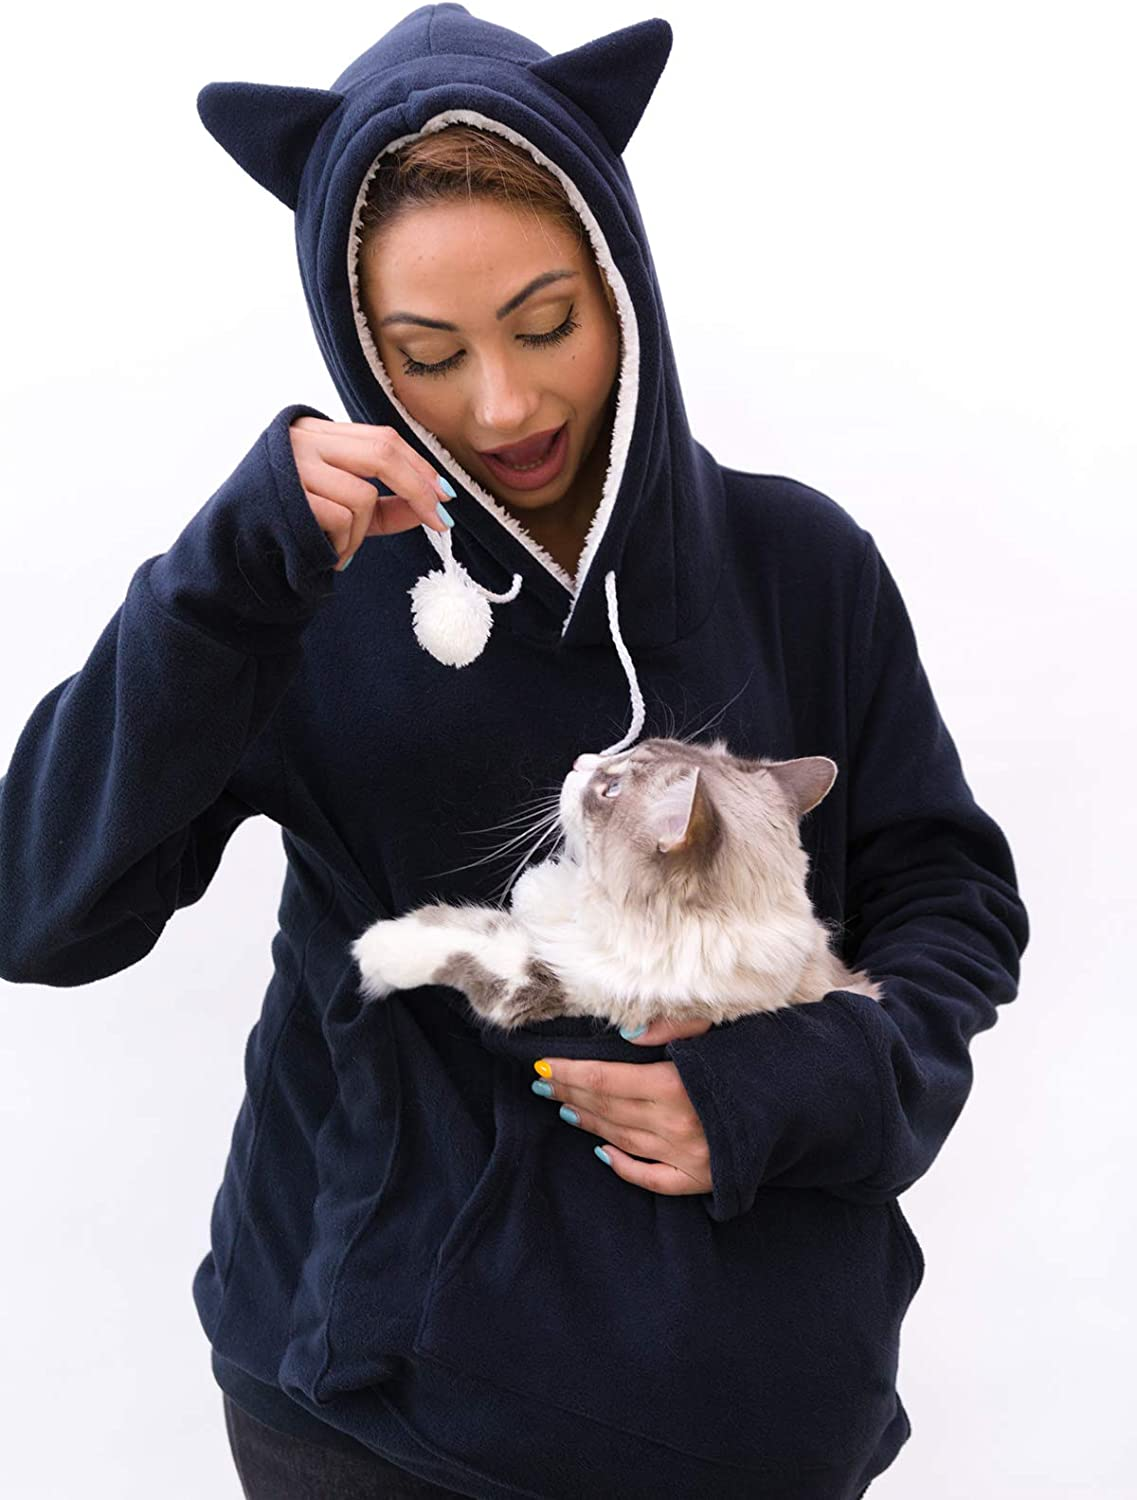 KangaKitty Hoodie Pet Holder Cat Dog Large Pouch Pocket Carriers Pullover with Cat Print Sweatshirt Unisex Kangaroo Pocket Small Animals